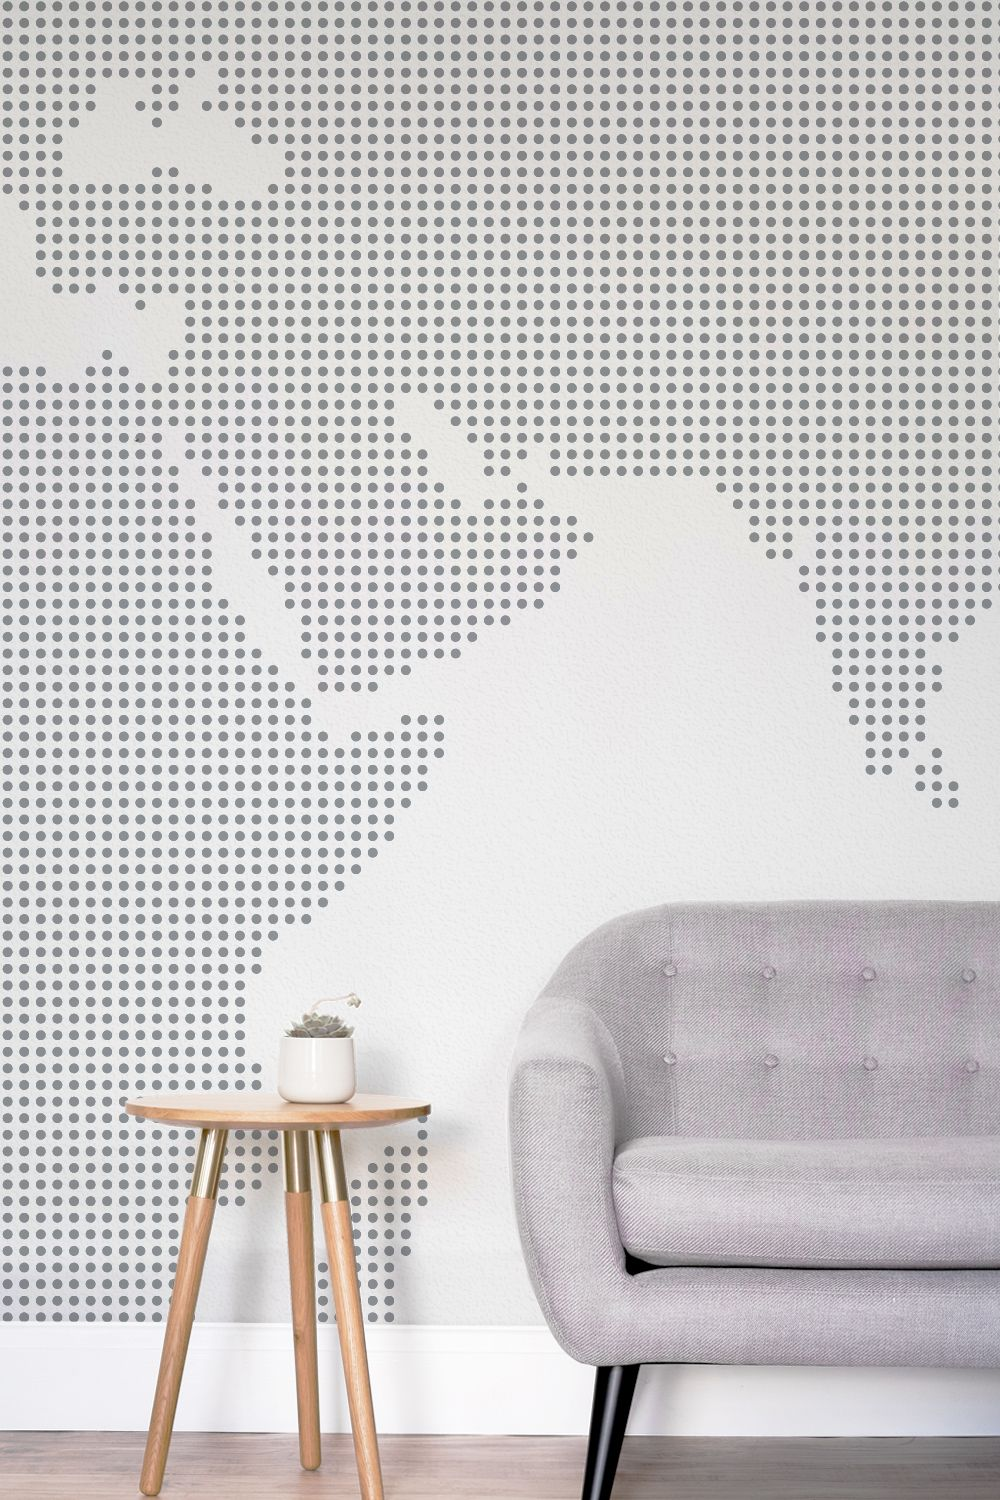 6 Orderly Wallpapers For Obsessive Neat Freaks Walls